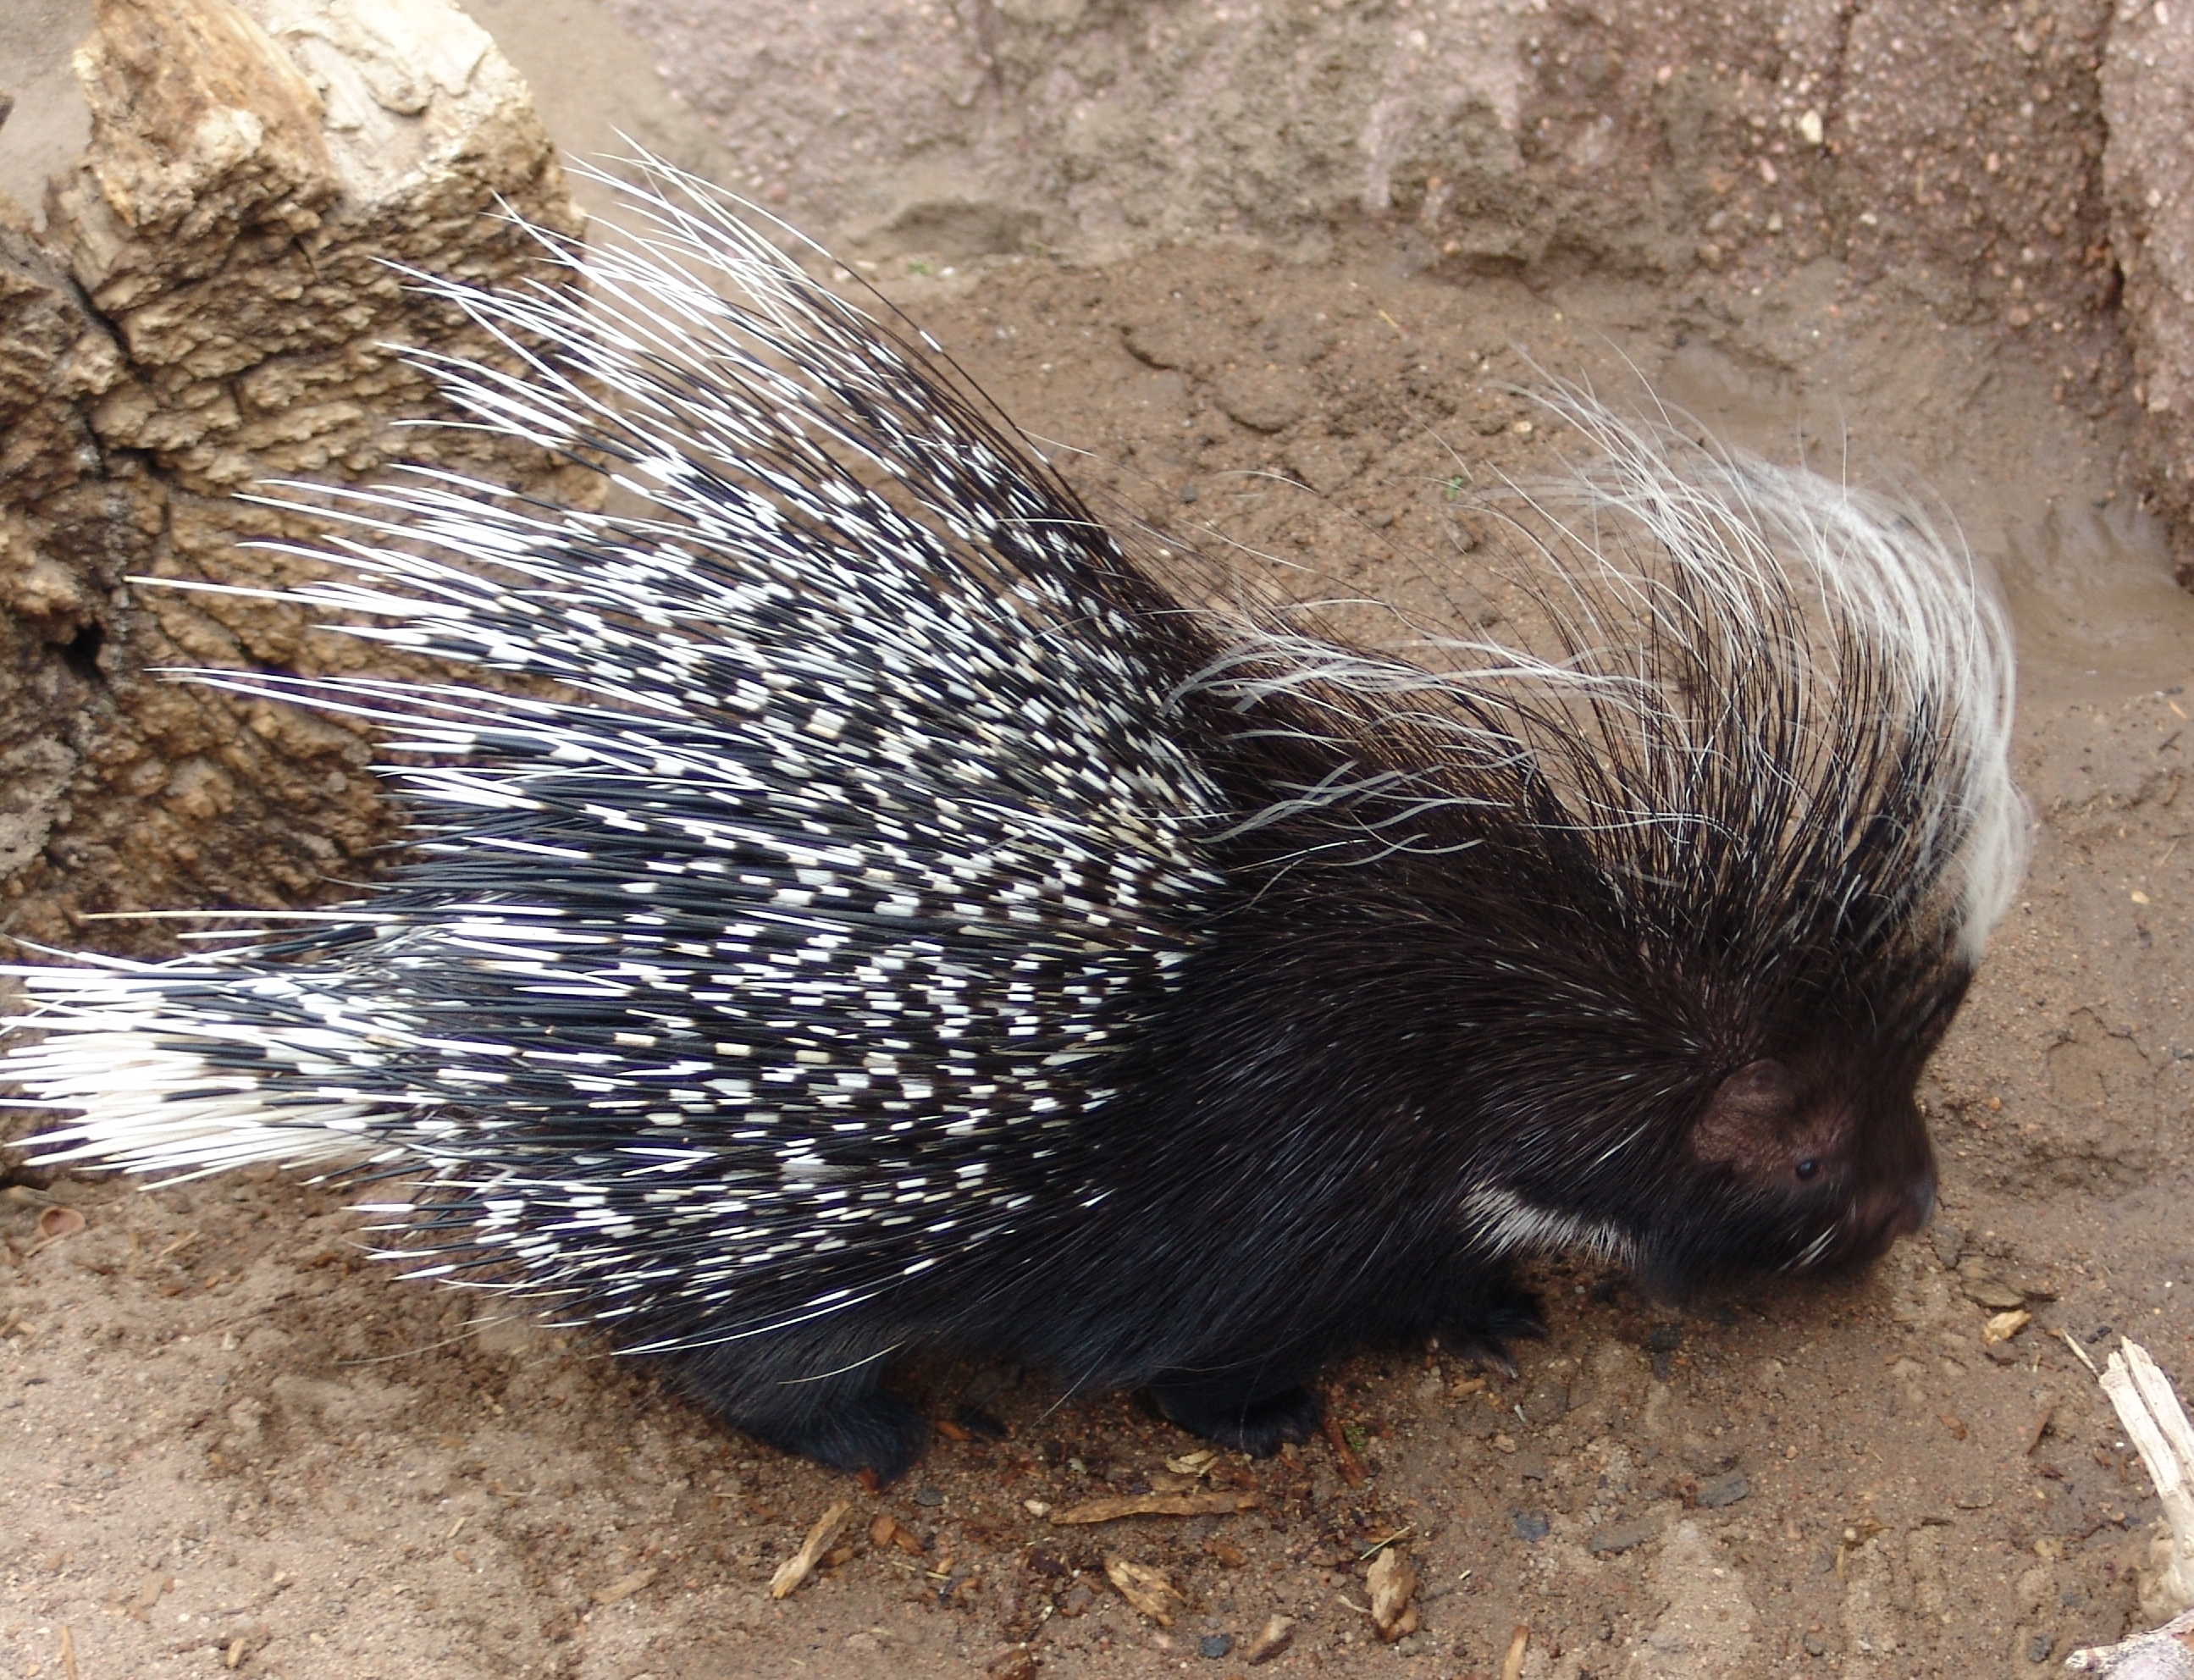 By Drew Avery (African crested Porcupine {Hystrix cristata}) [CC-BY-2.0 (http://creativecommons.org/licenses/by/2.0)], via Wikimedia Commons